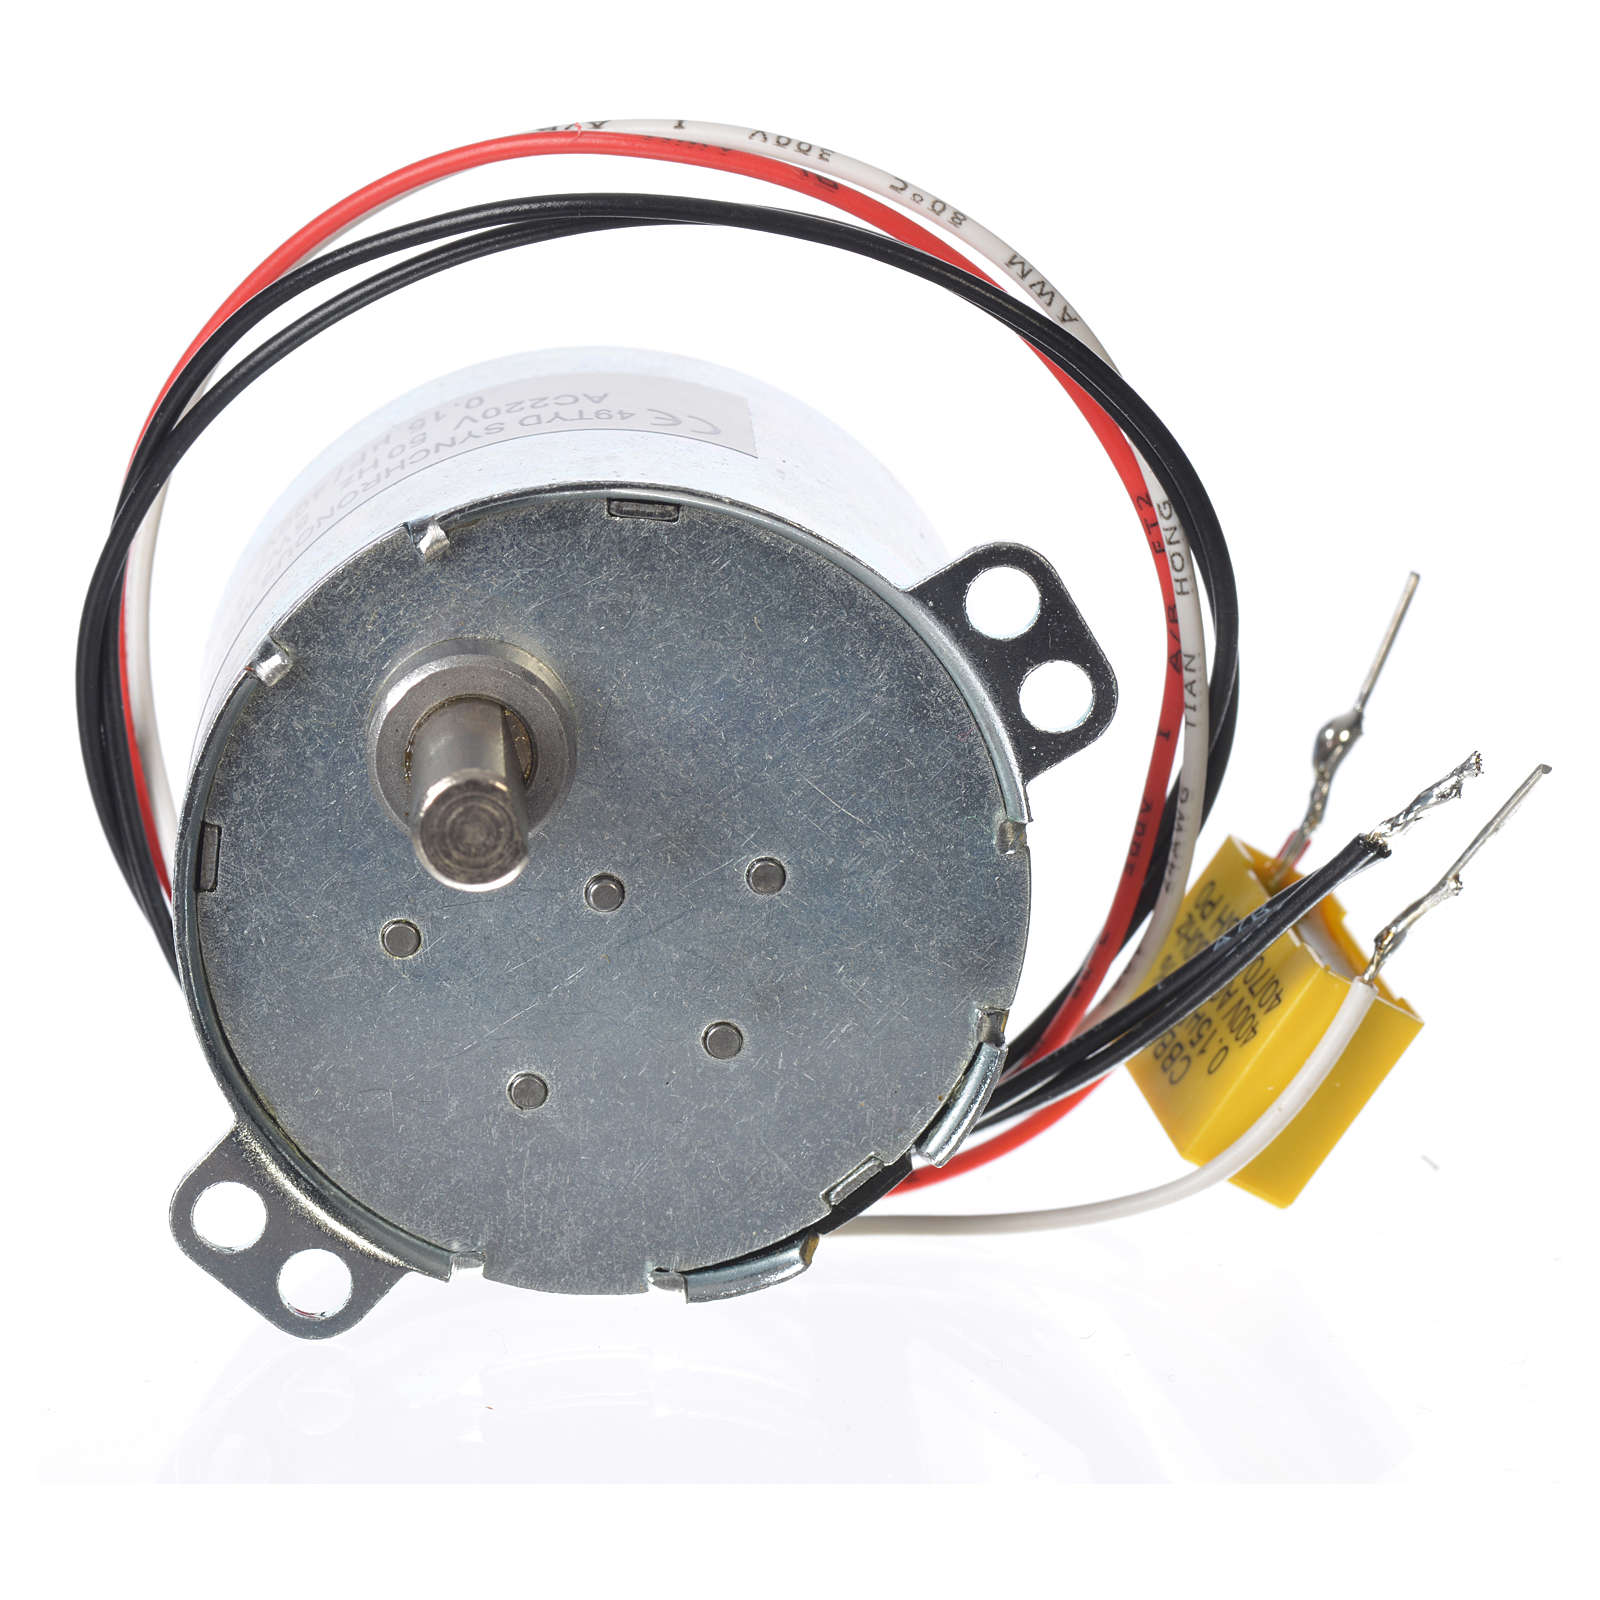 Motor reductor for nativities MV 2.5spin/minute 4